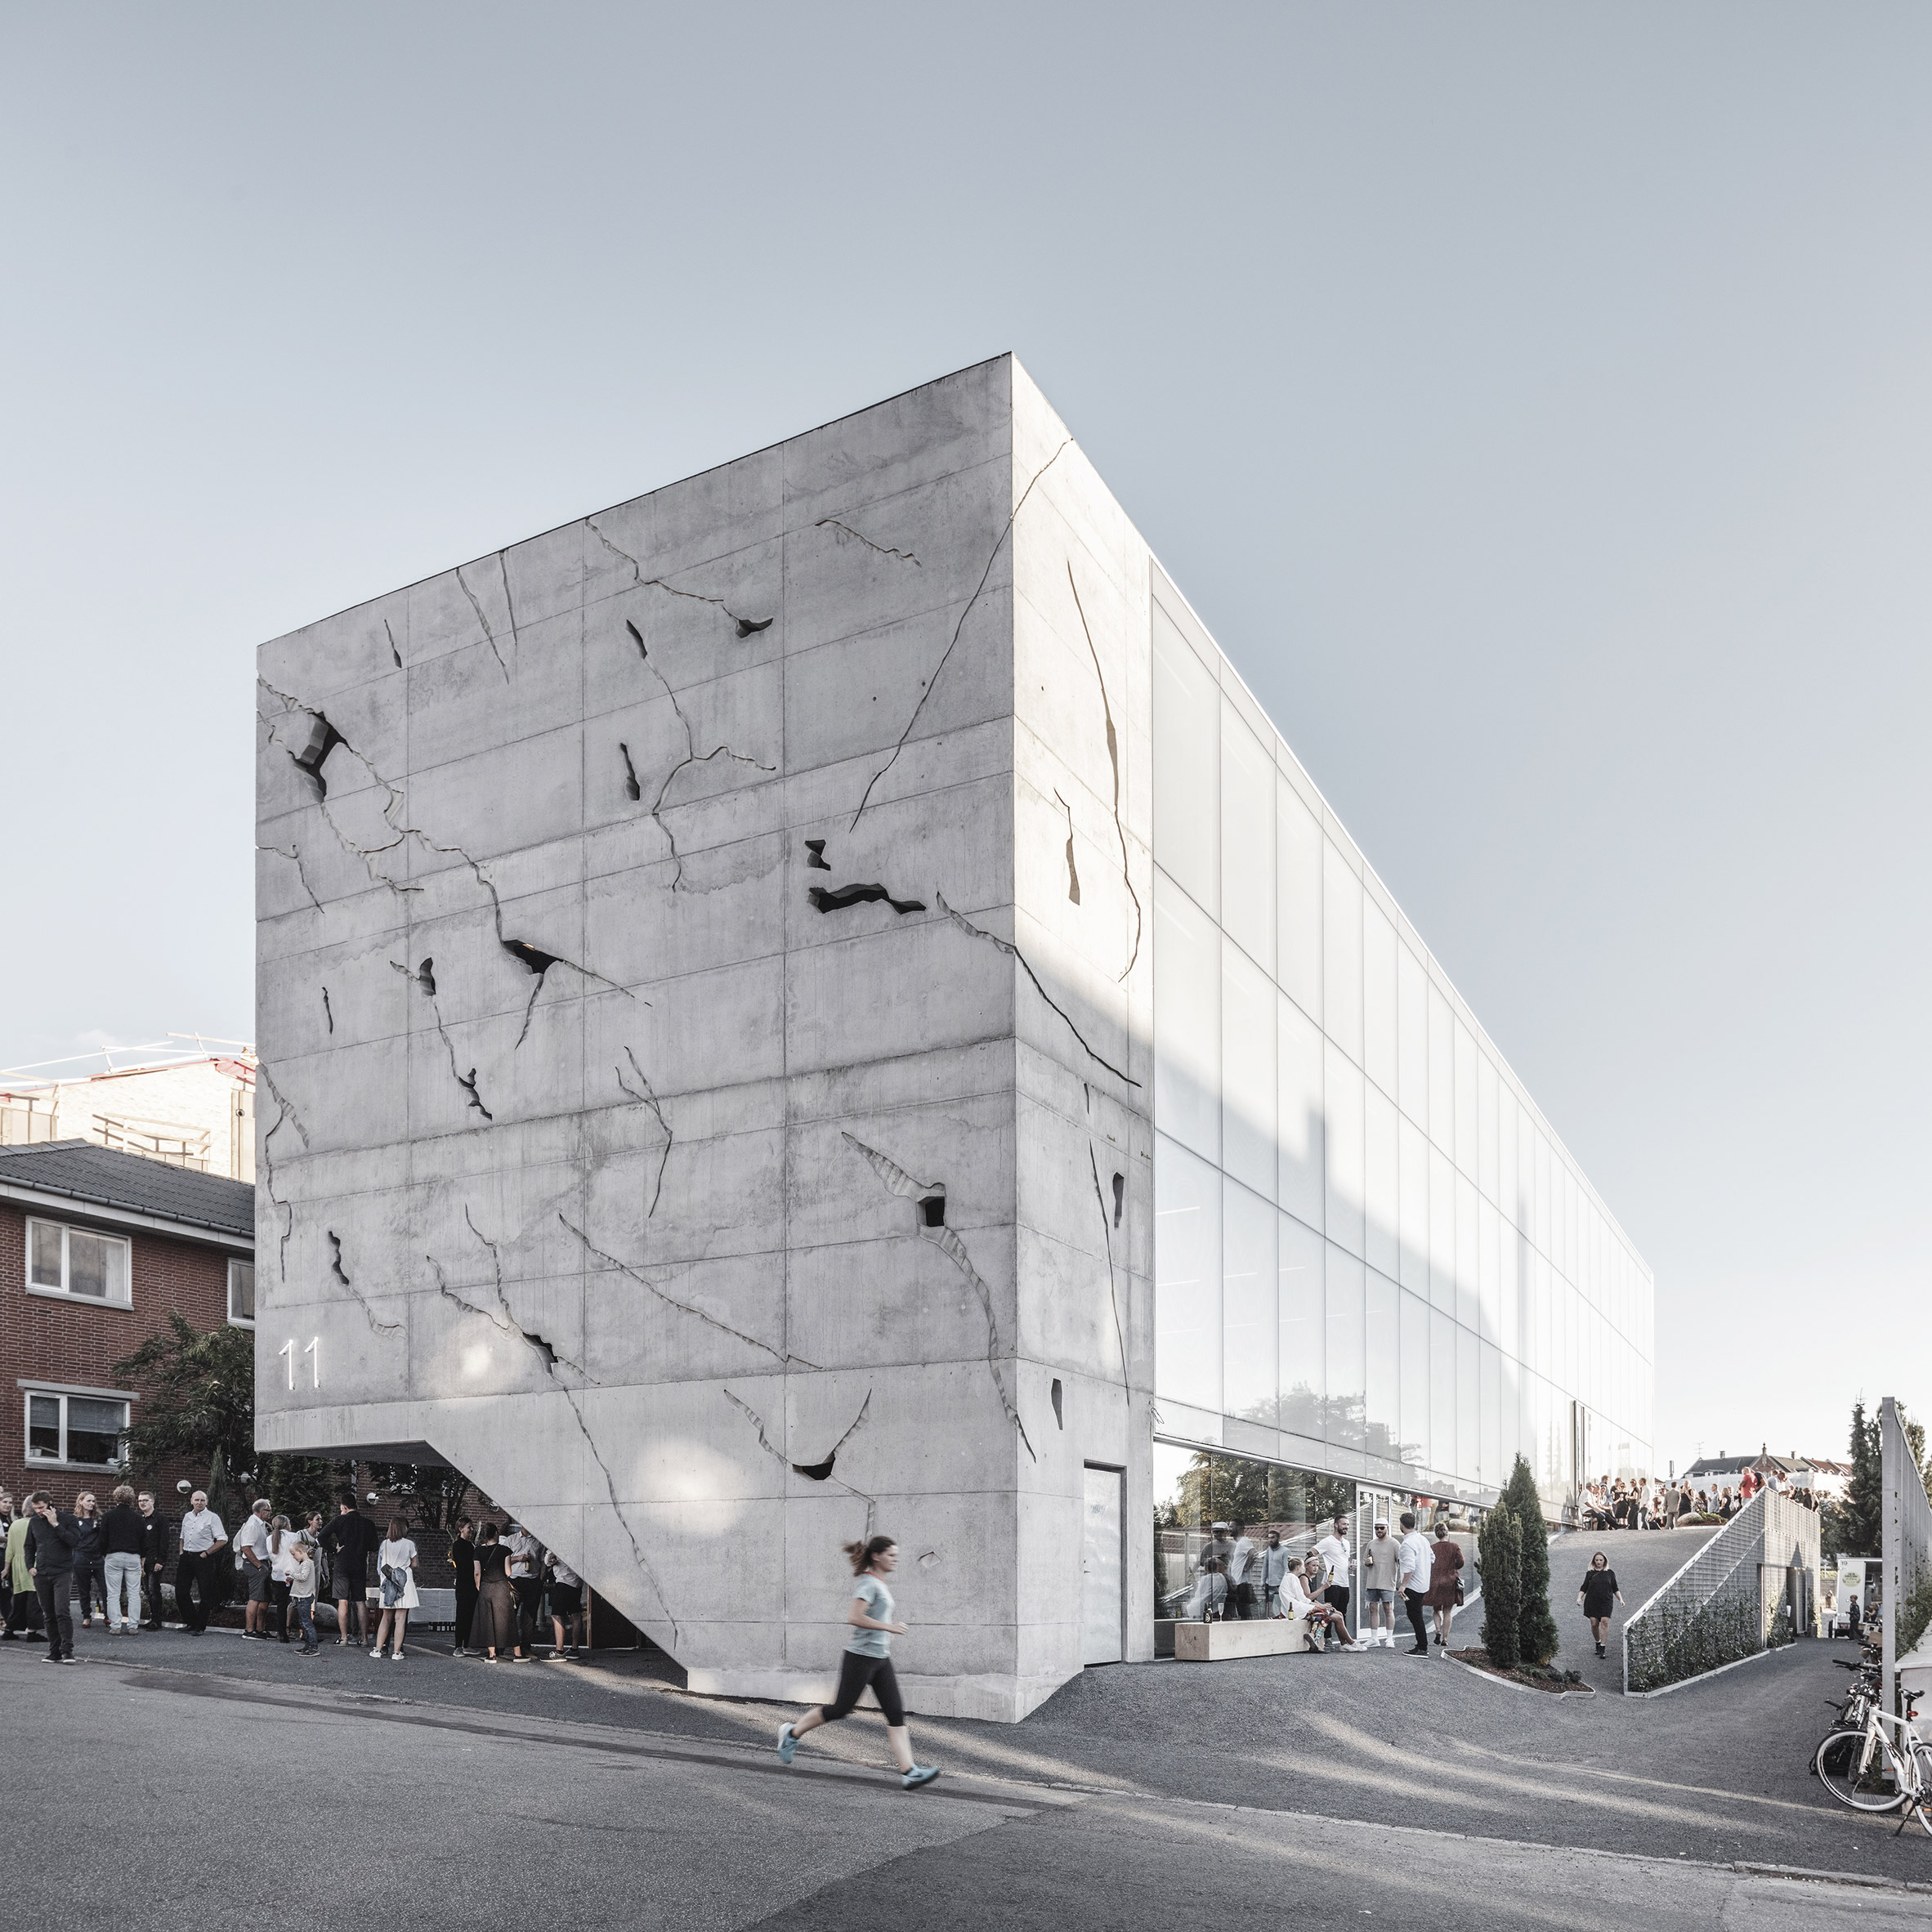 Danish office block by Sleth features cracked concrete facade and external stairs